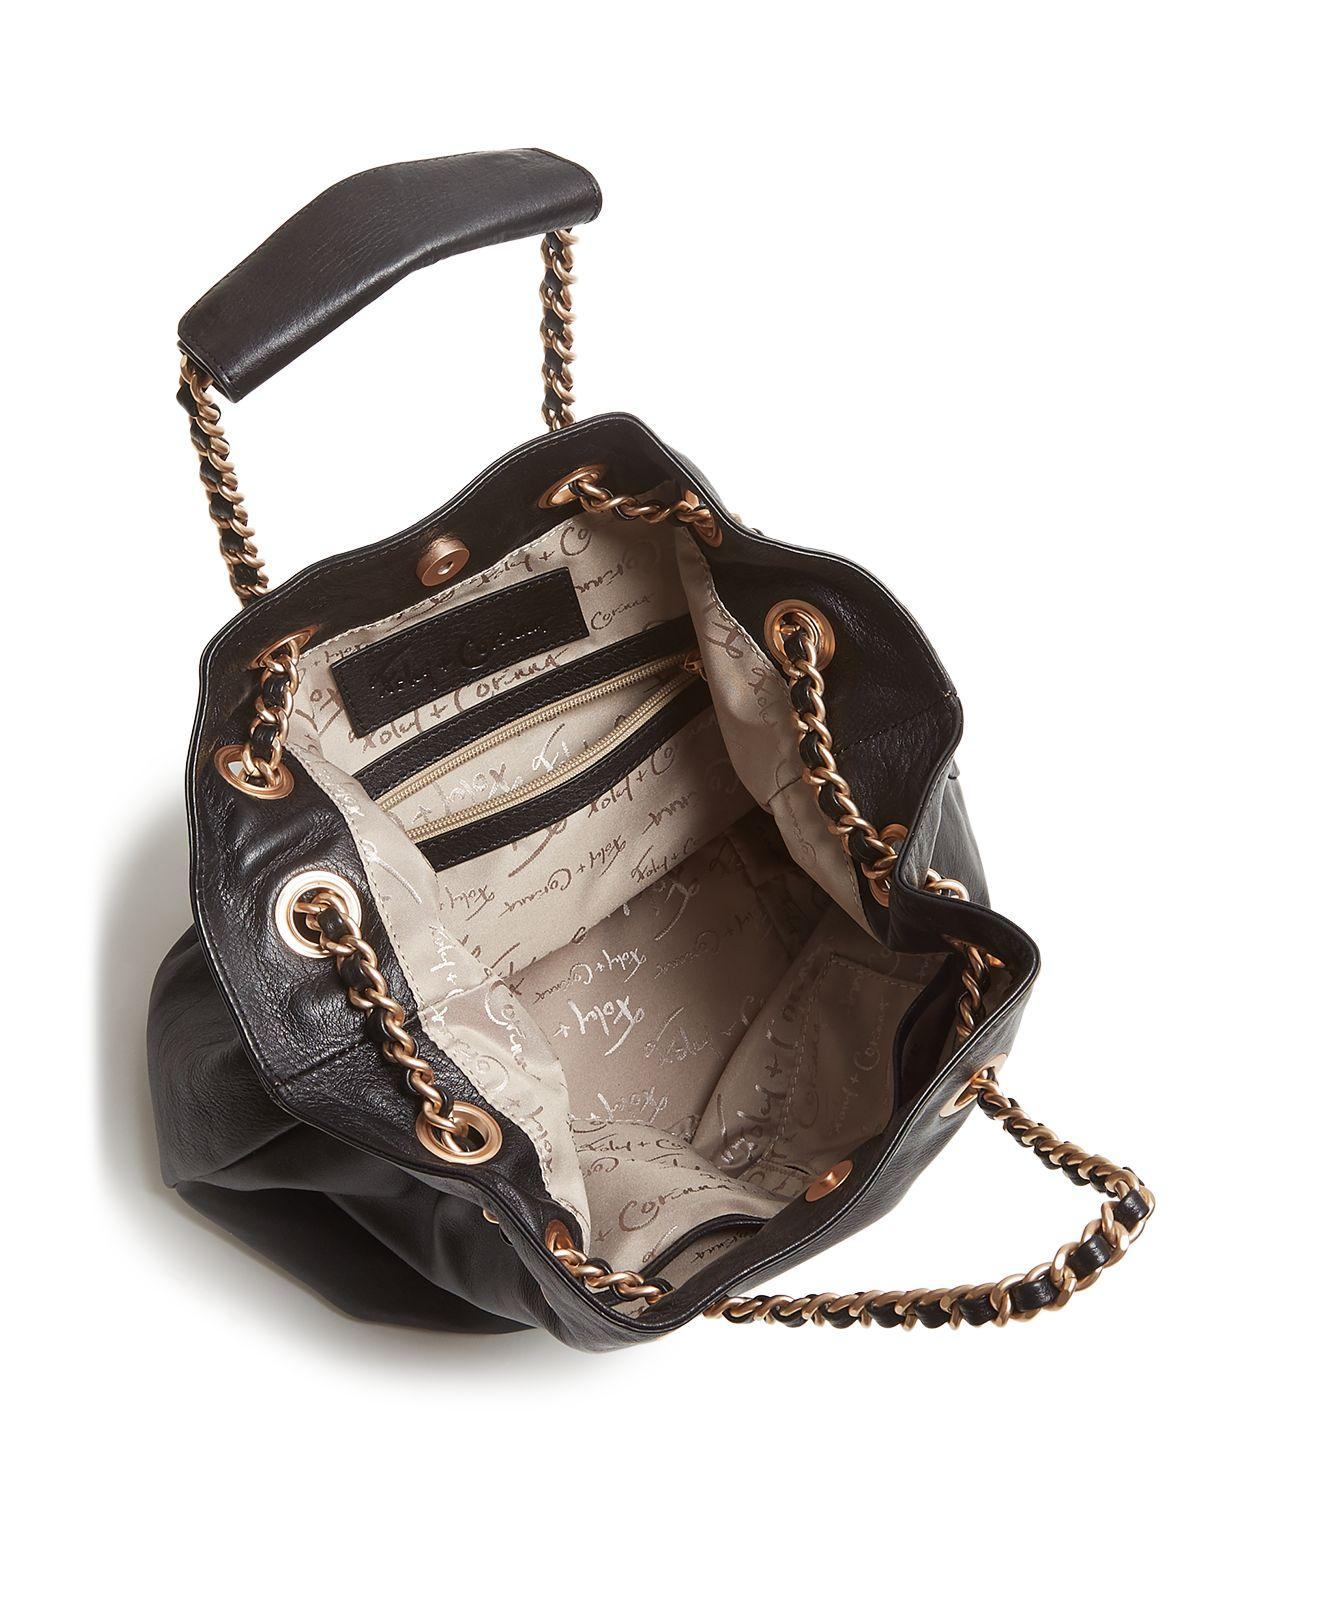 Foley + Corinna Leather Daisy Tote in Black/Gold (Black)